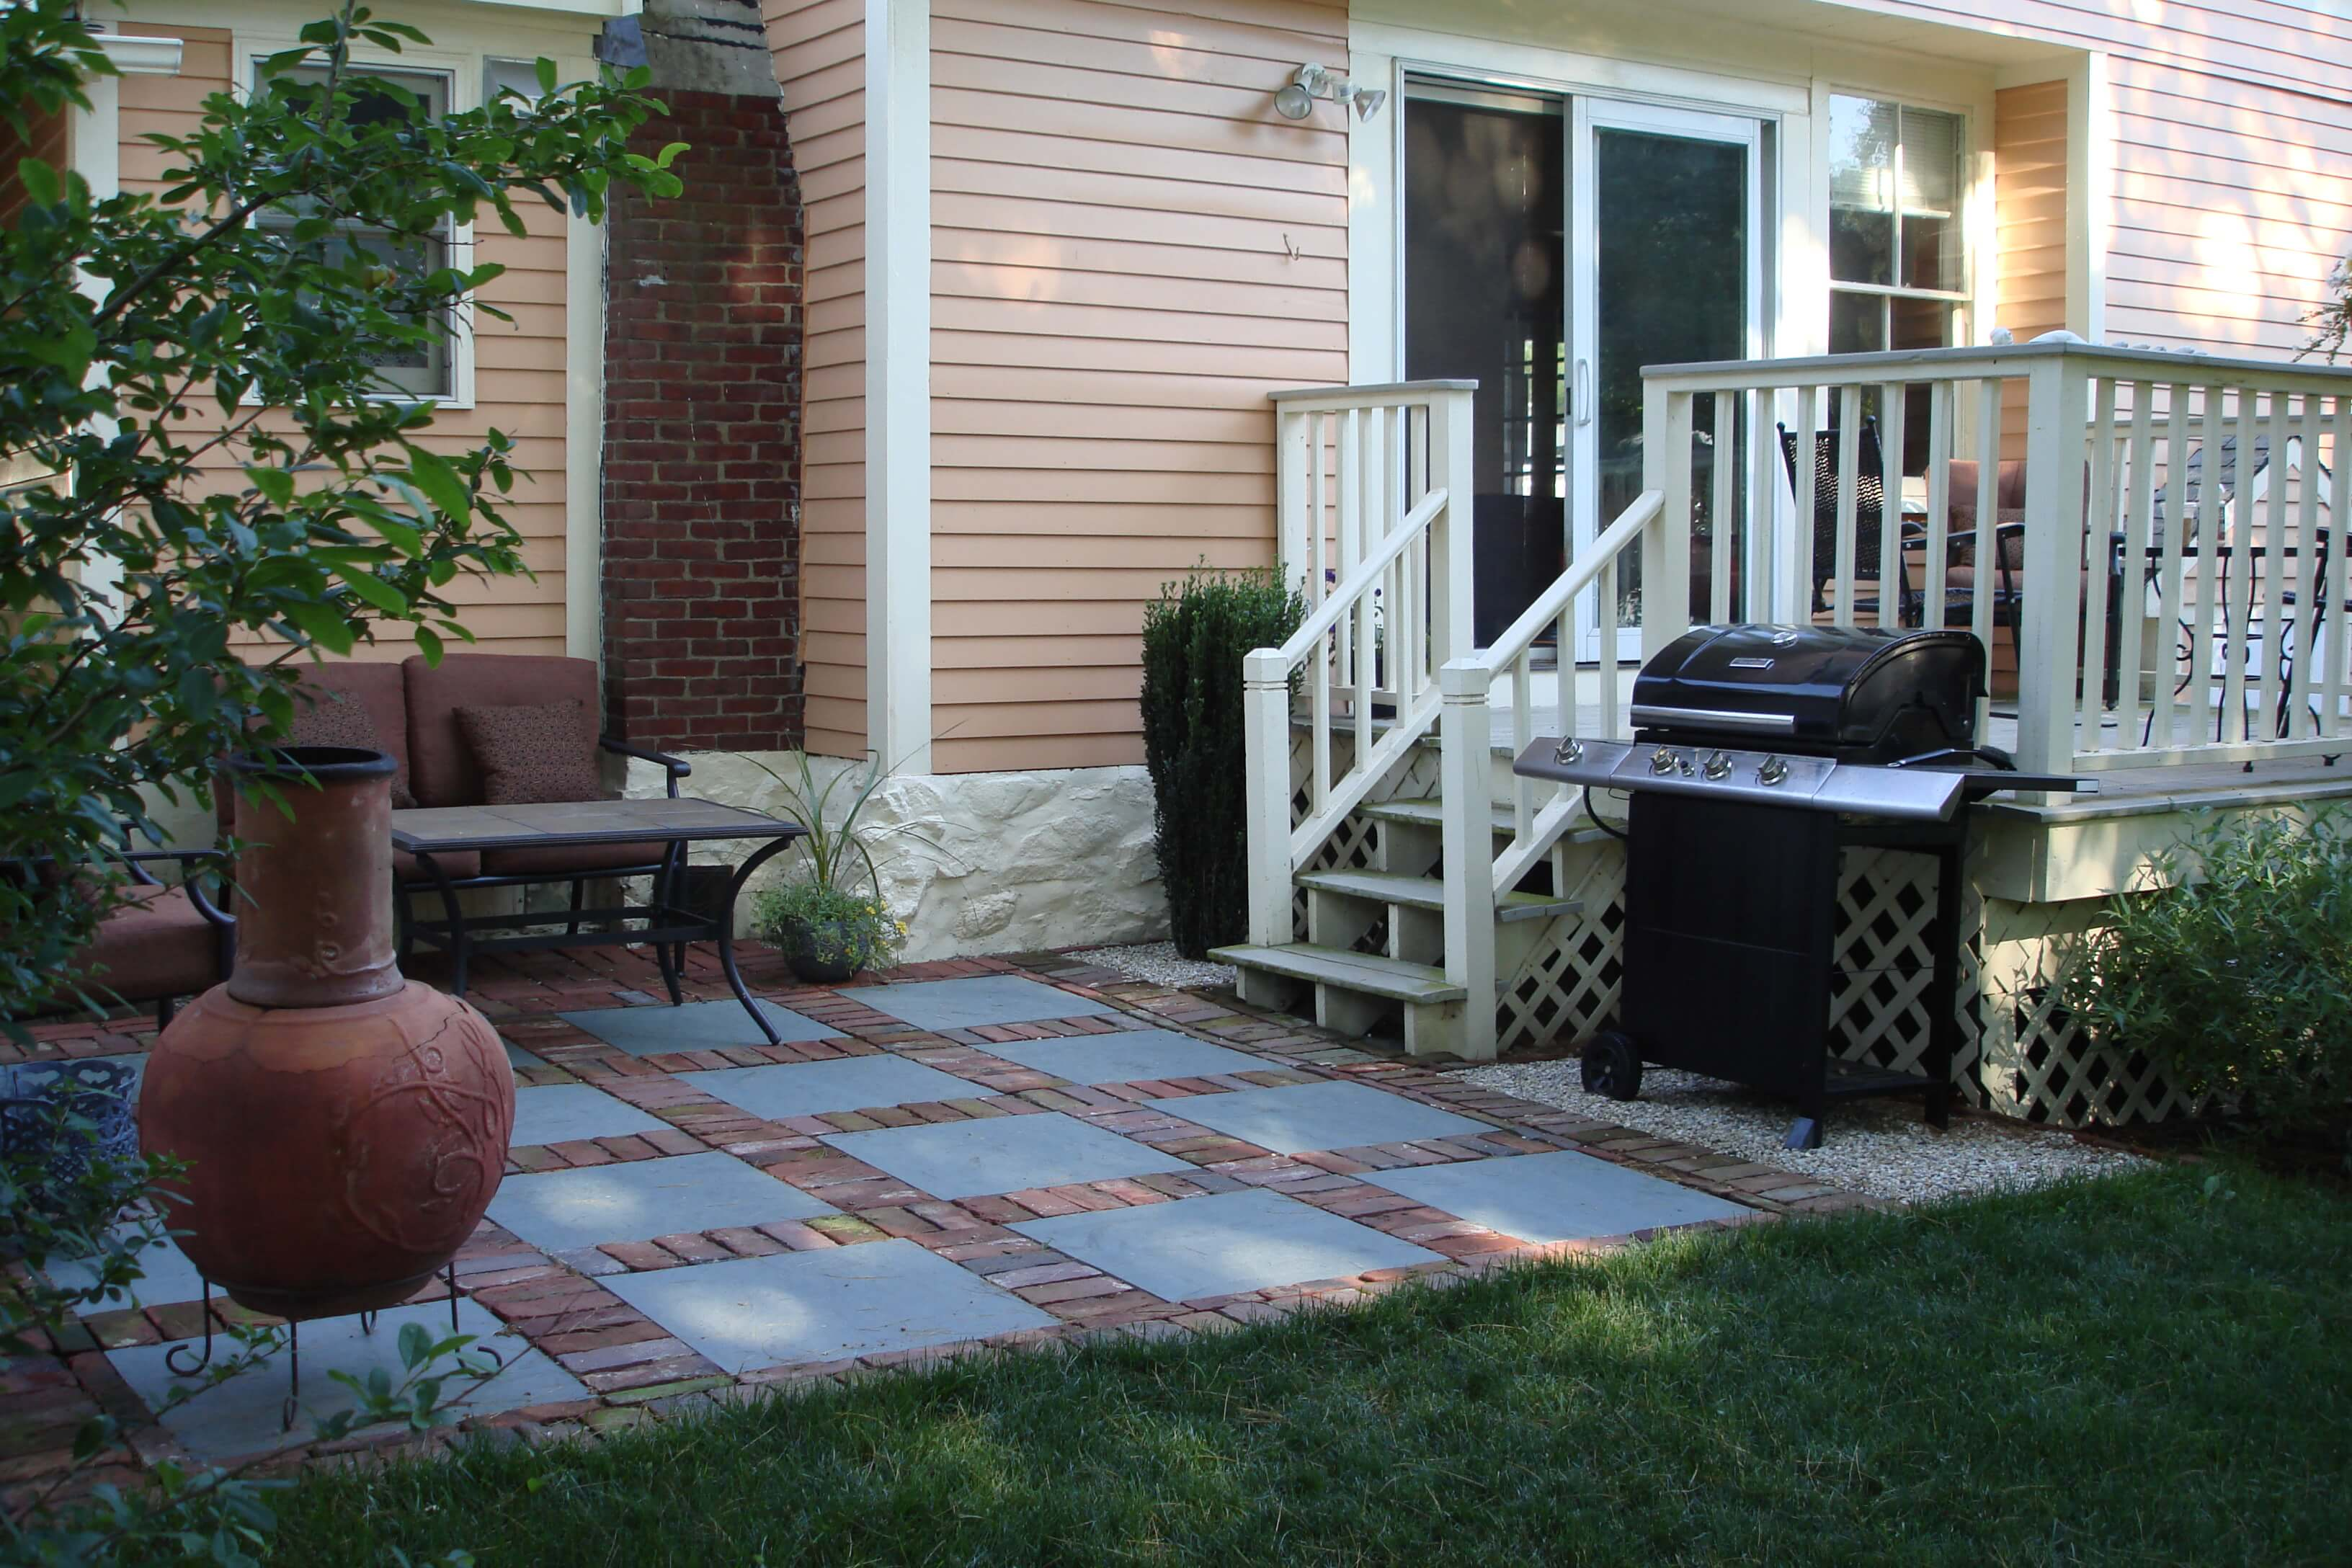 15+ Enhancing Backyard Patio Design Ideas For Small Spaces on Small Backyard Brick Patio Ideas  id=50768